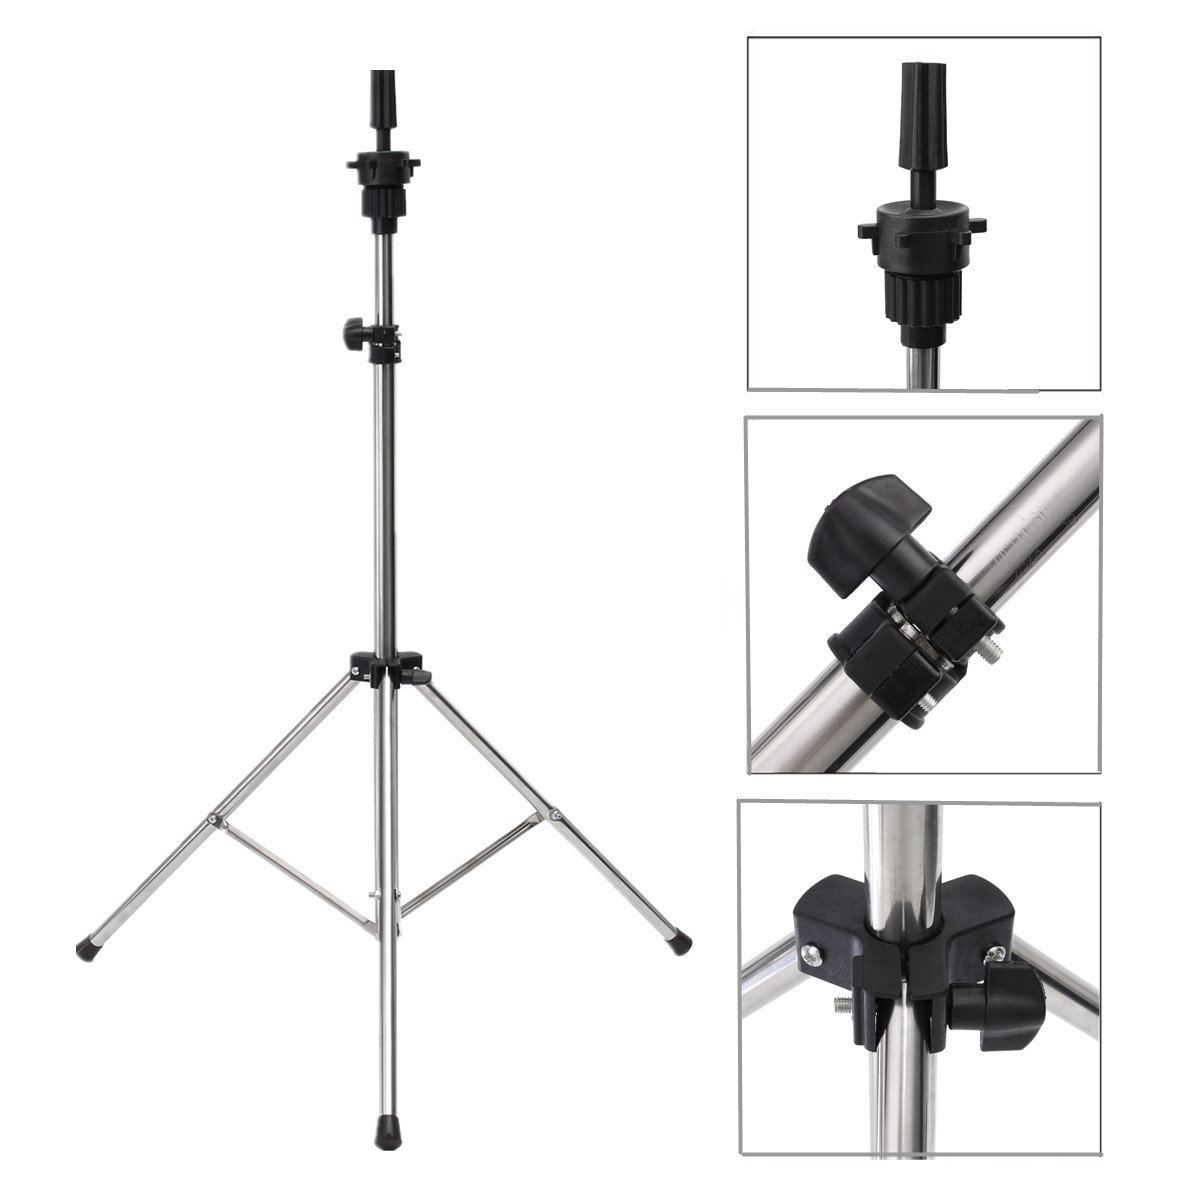 Adjustable Hair Wig Head Tripod Stand Holder For Hairdressing Training Mannequin Practice